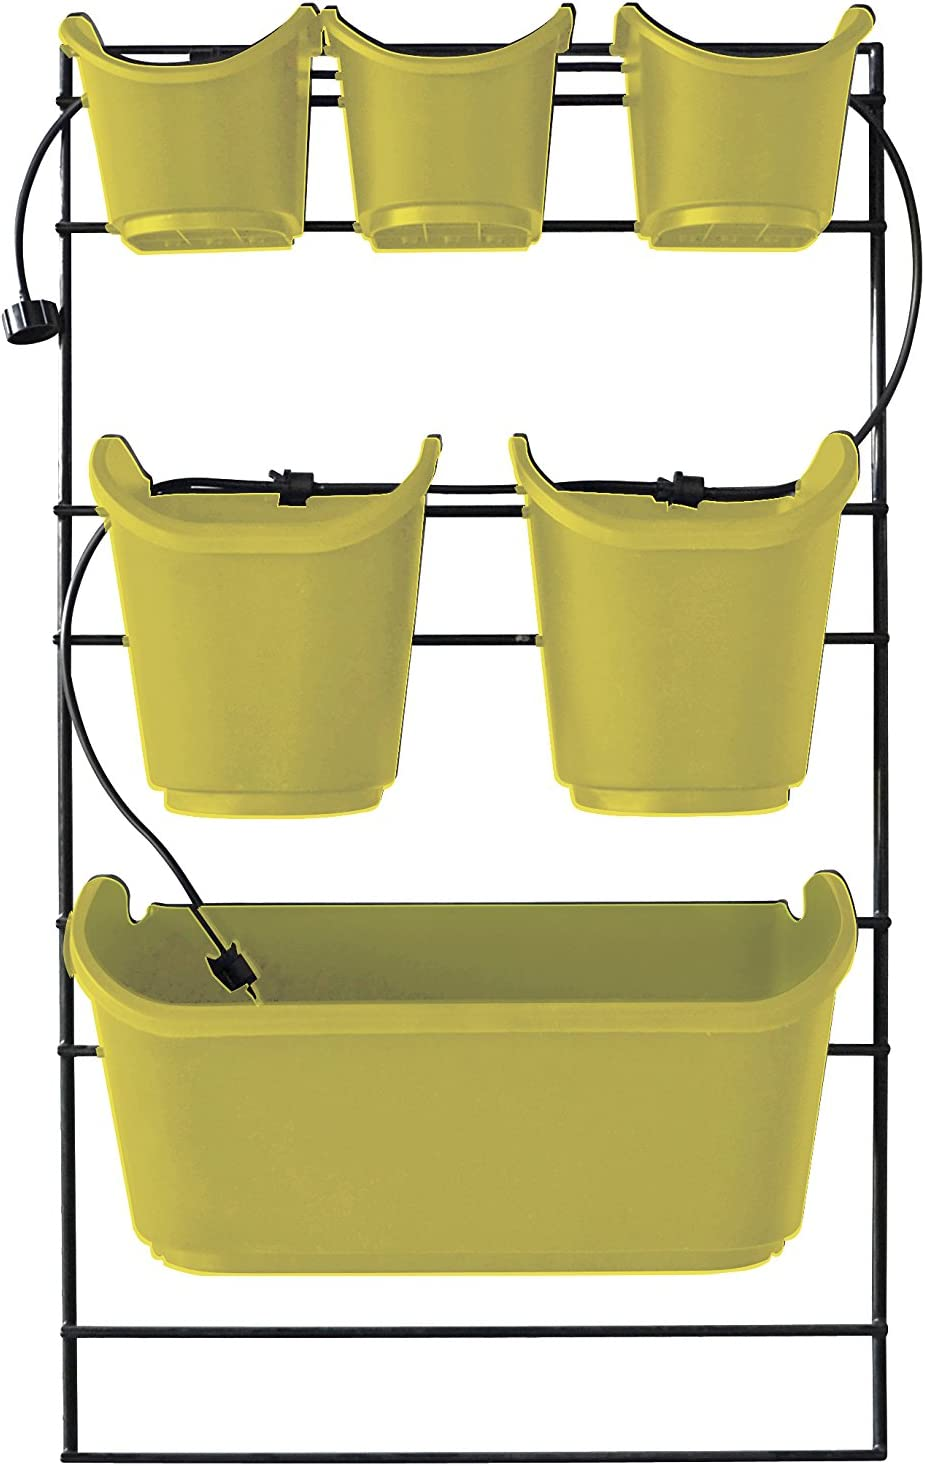 Watex WX052 Mounted Green Wall Grow-Your-Own Vertical Planter, Yellow